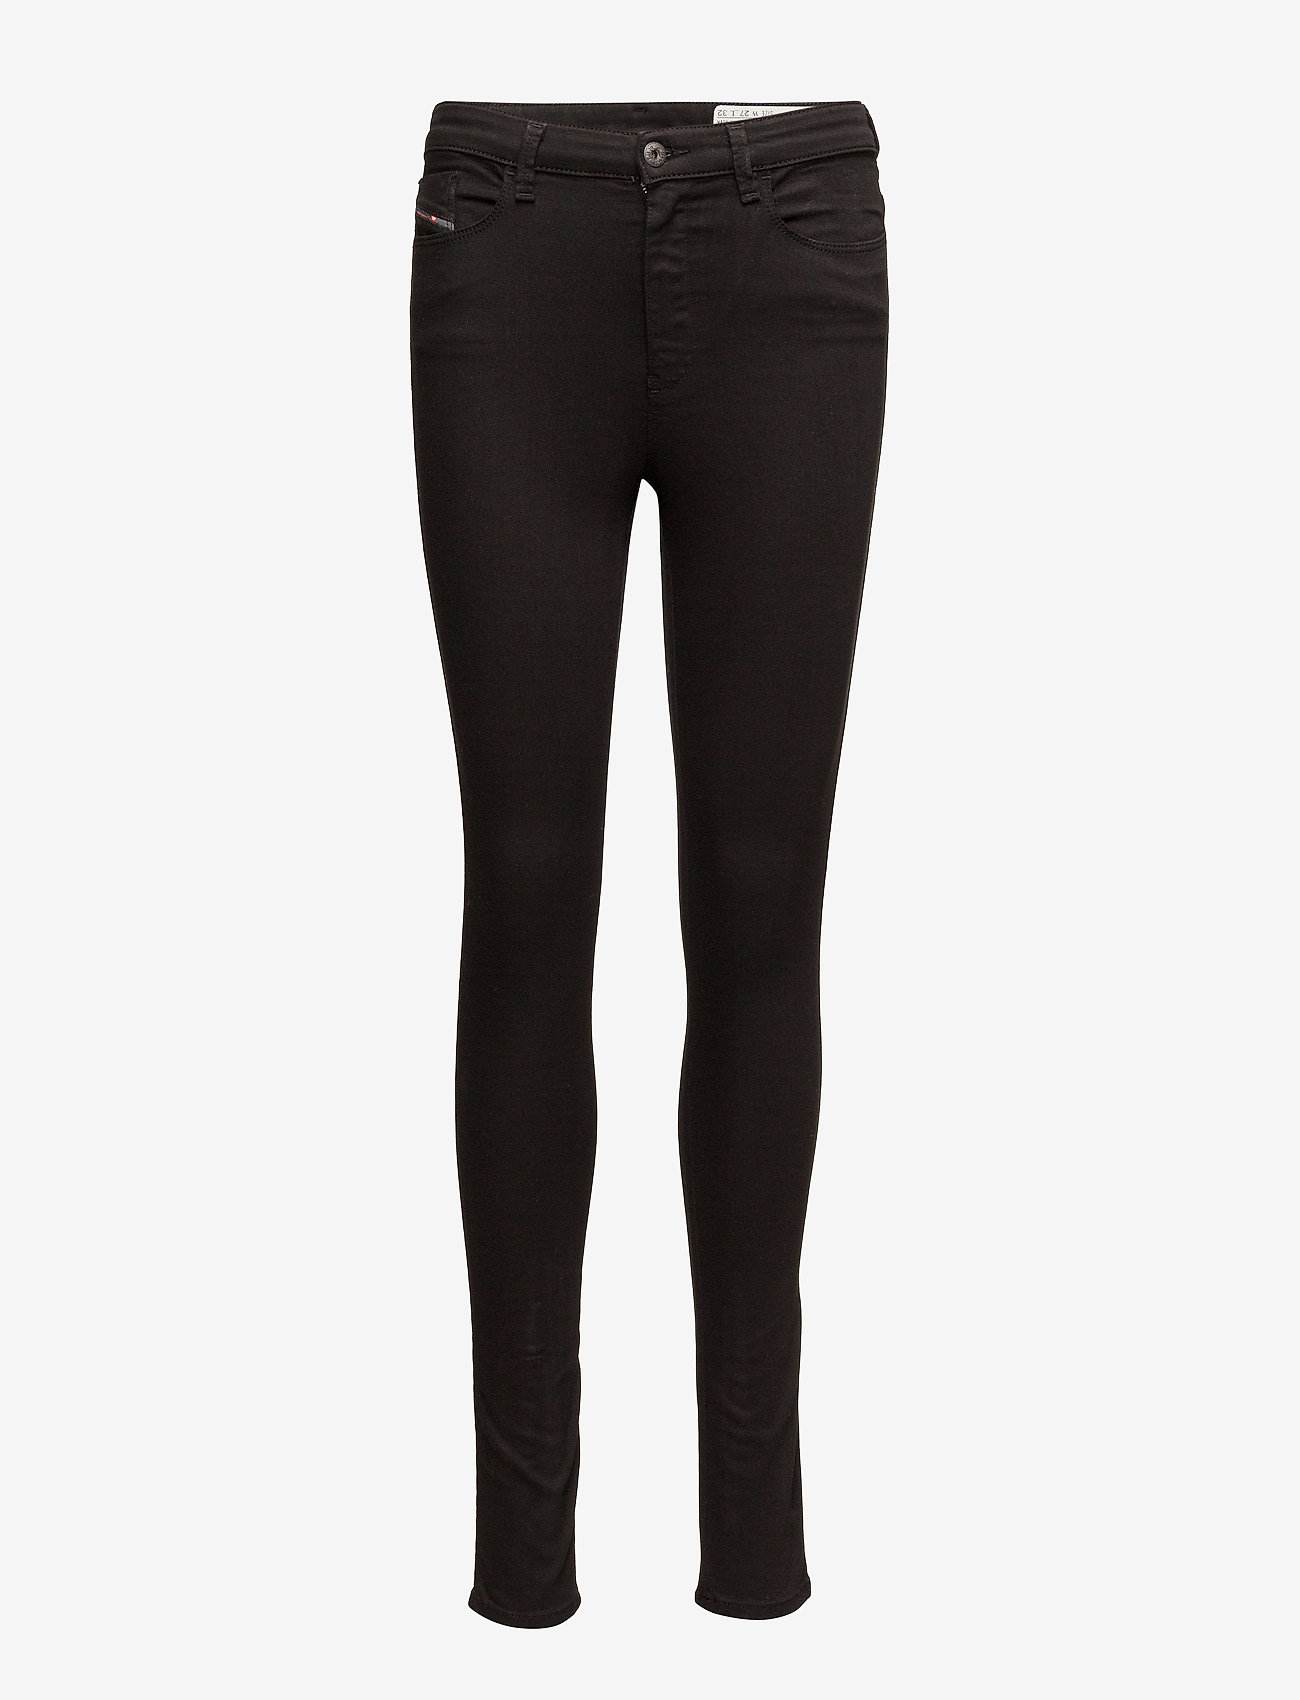 Diesel Women - SKINZEE-HIGH TROUSERS - dżinsy skinny fit - black/denim - 0